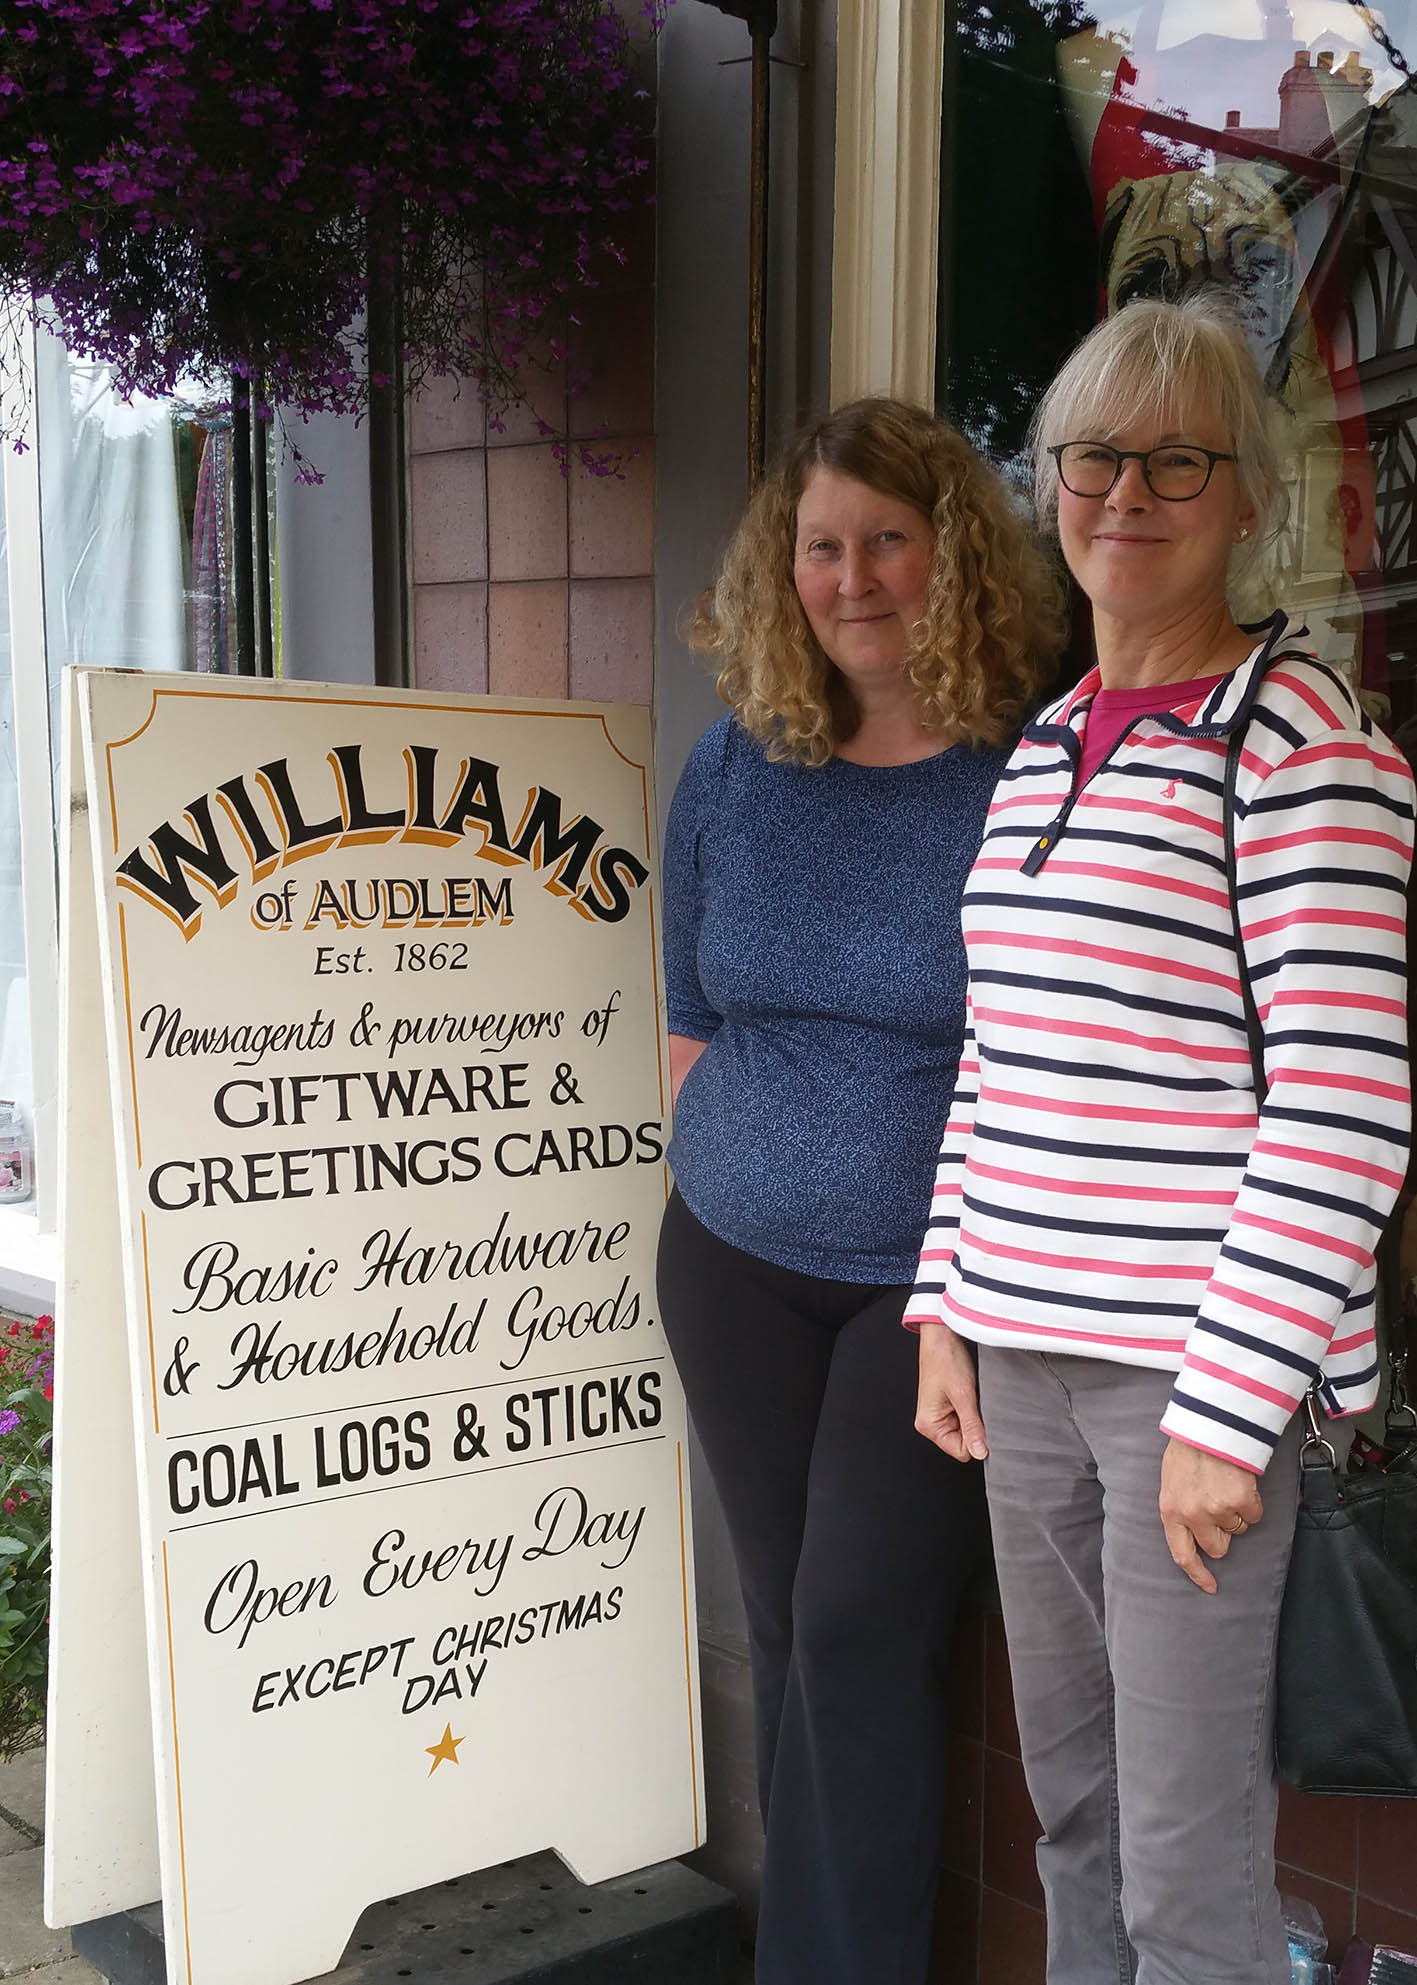 Judy Evans amd ronnie Cruwys at Williams of Audlem